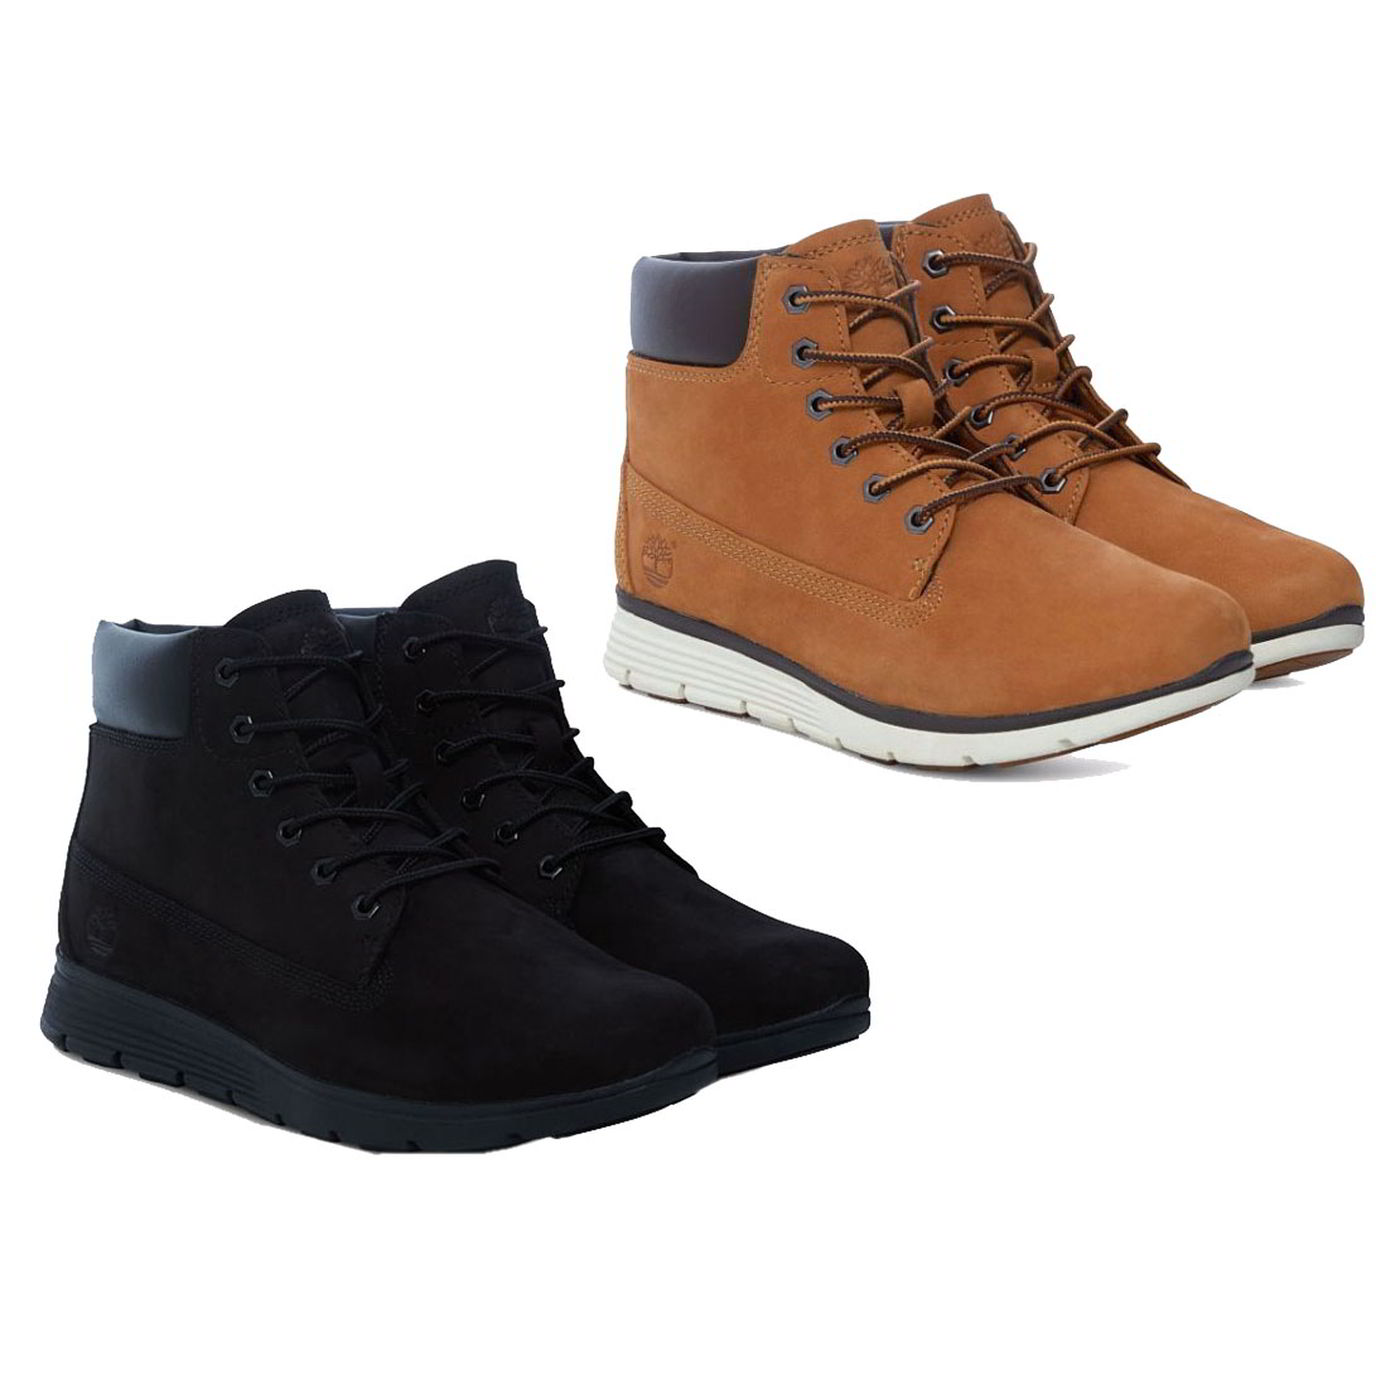 Details about Timberland Killington 6 Inch Classic Kids Womens Ladies Chukka Boots Size 3 6.5